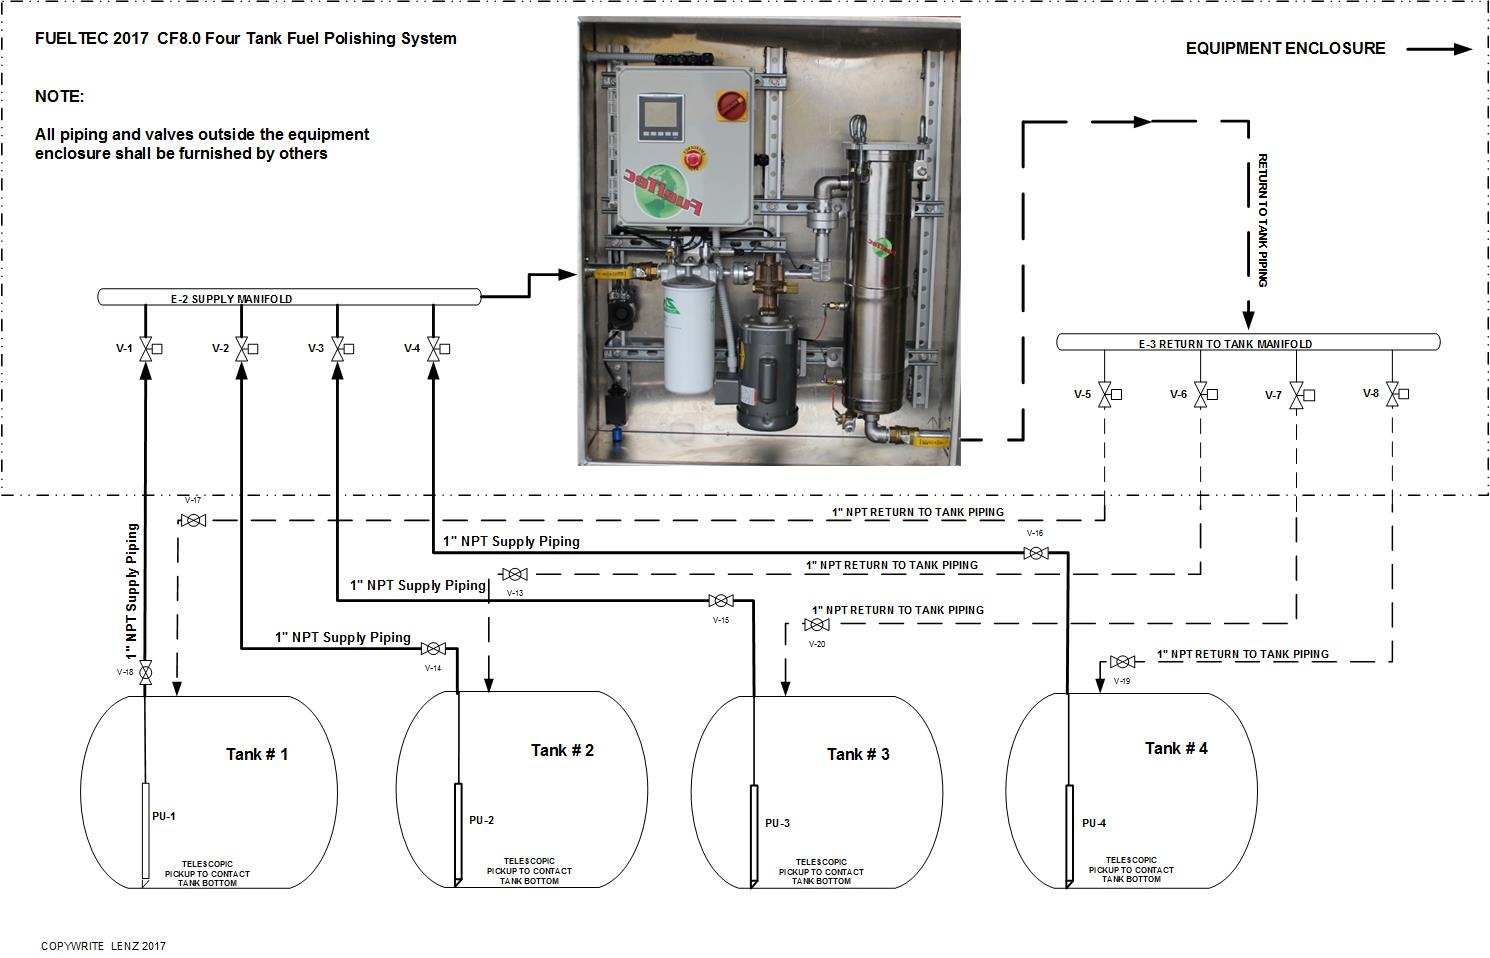 Automated four tank fuel polishing system